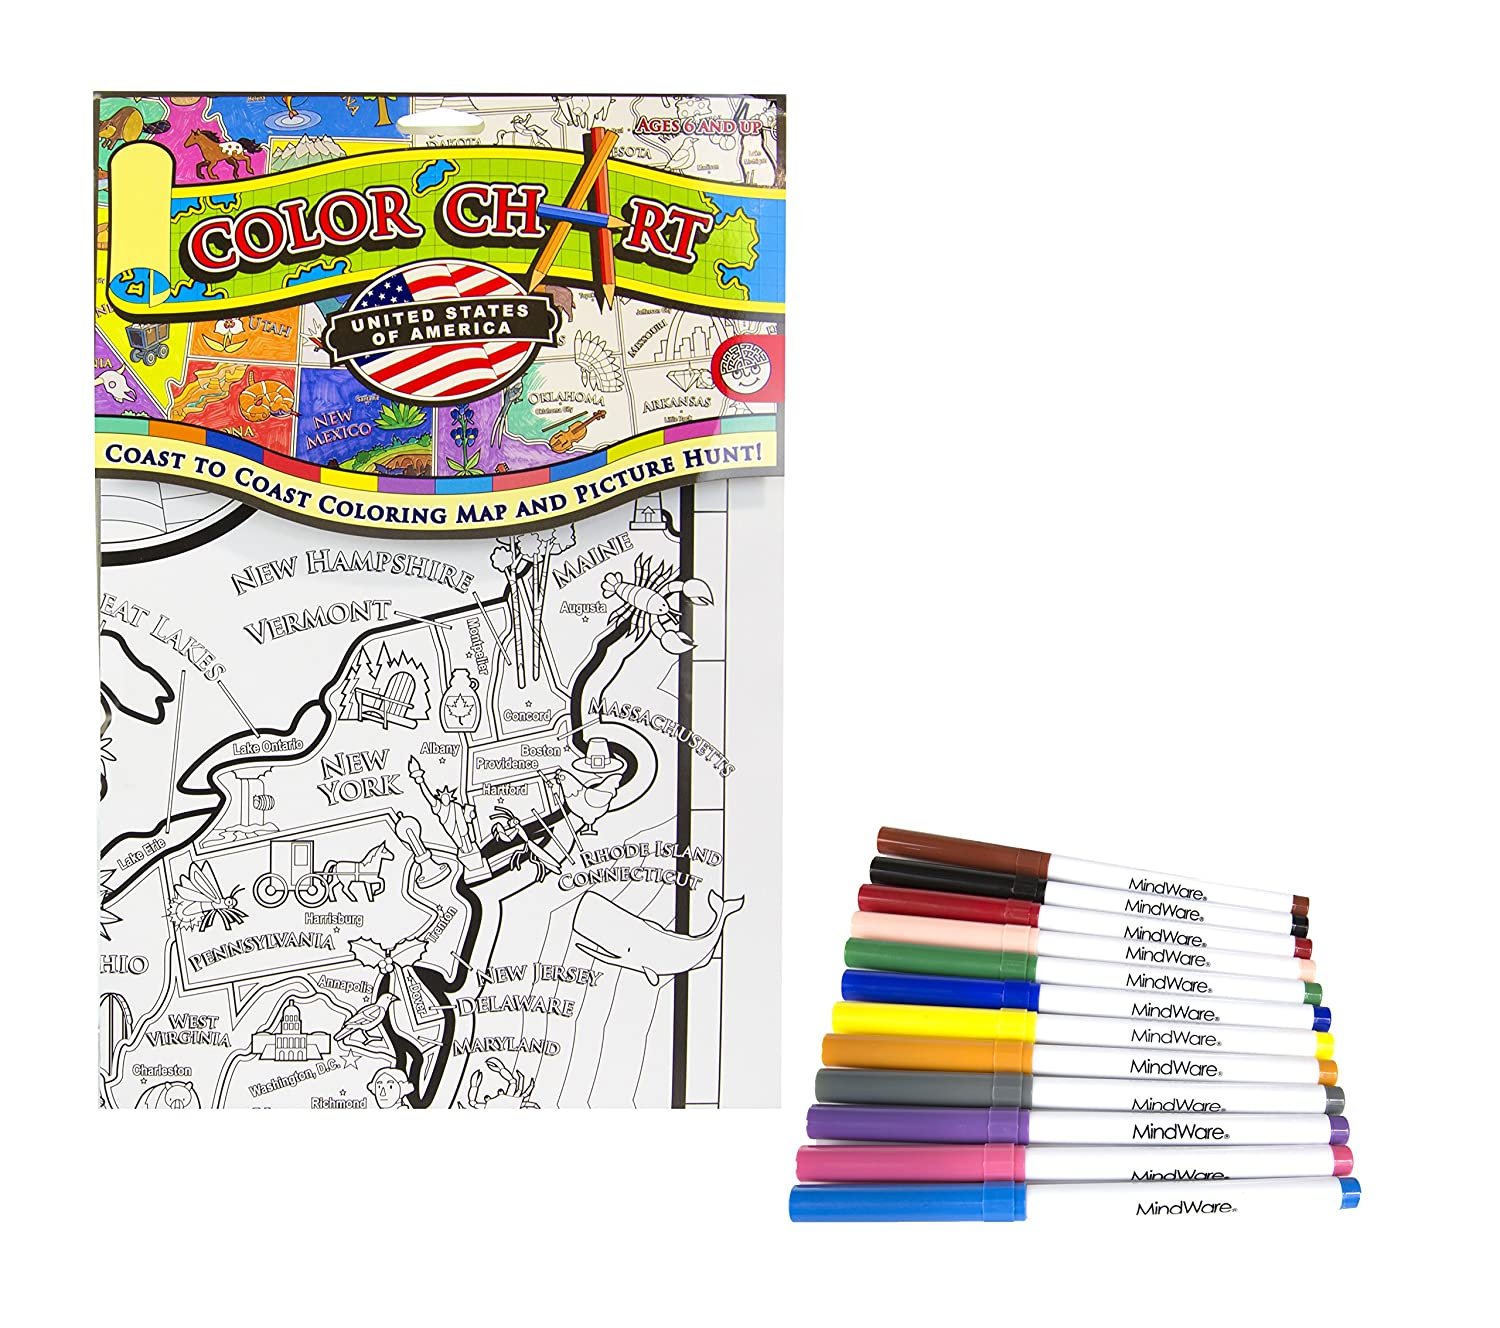 Amazoncom MindWare Color Chart USA Coloring Map and Picture